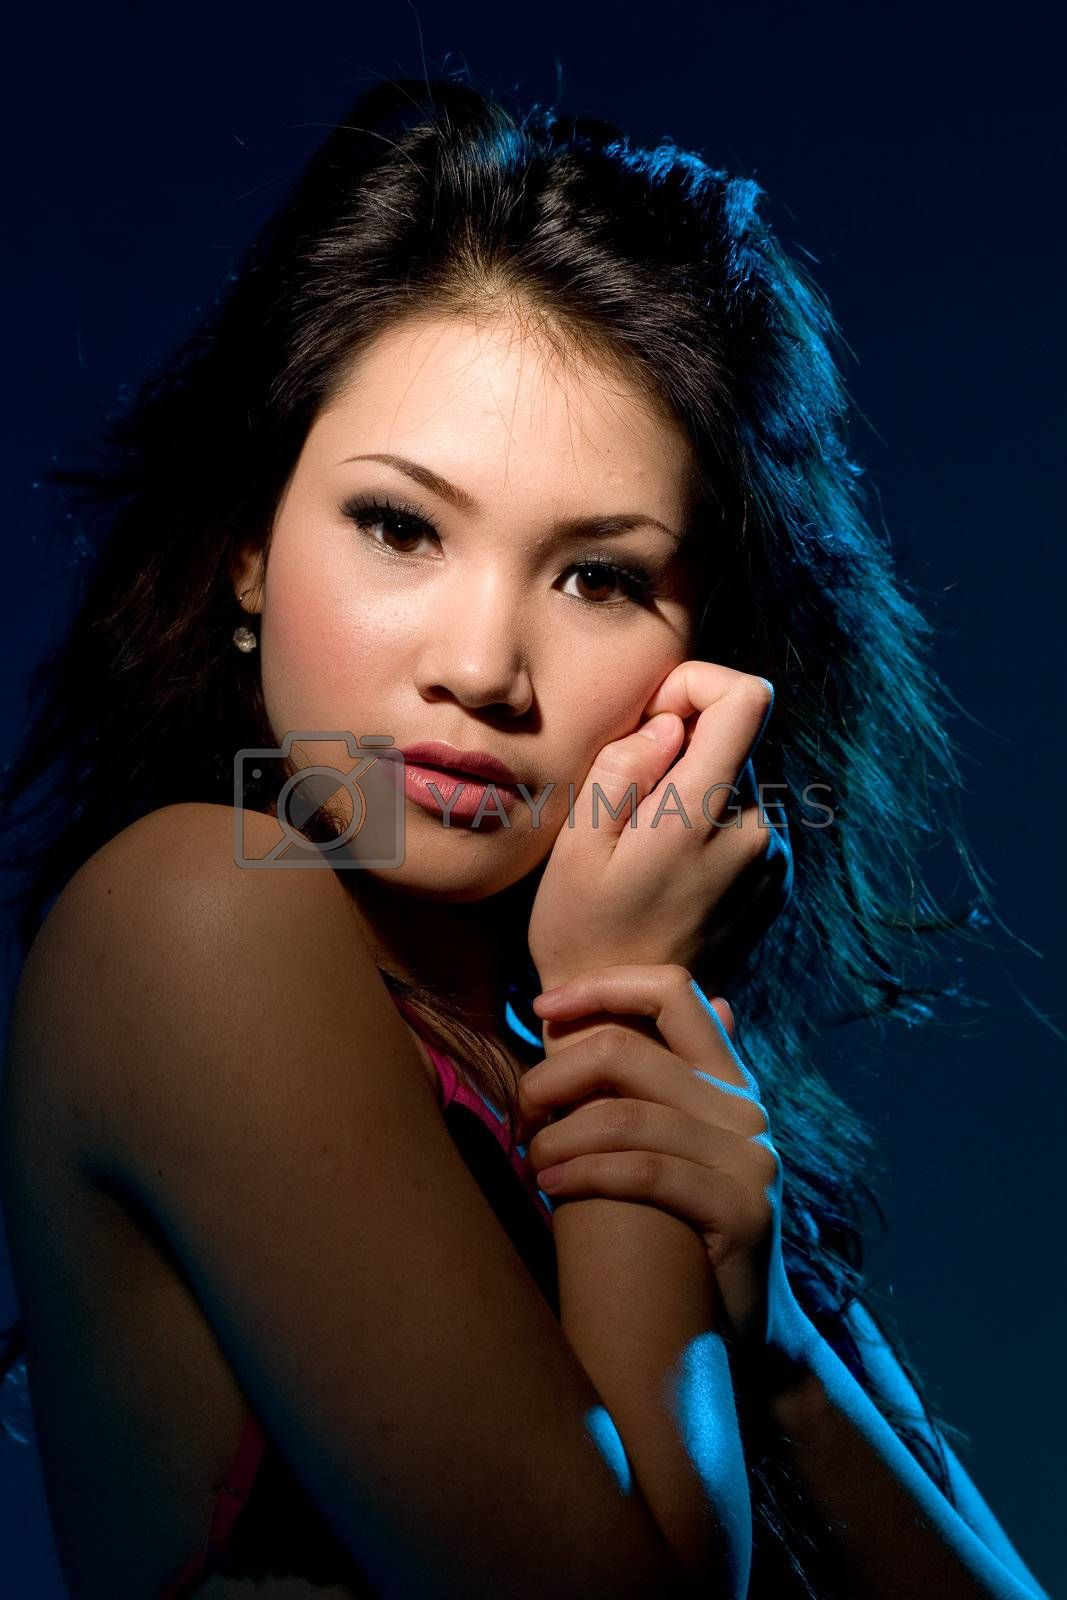 young woman with a moody sensual alluring look under blue lighting